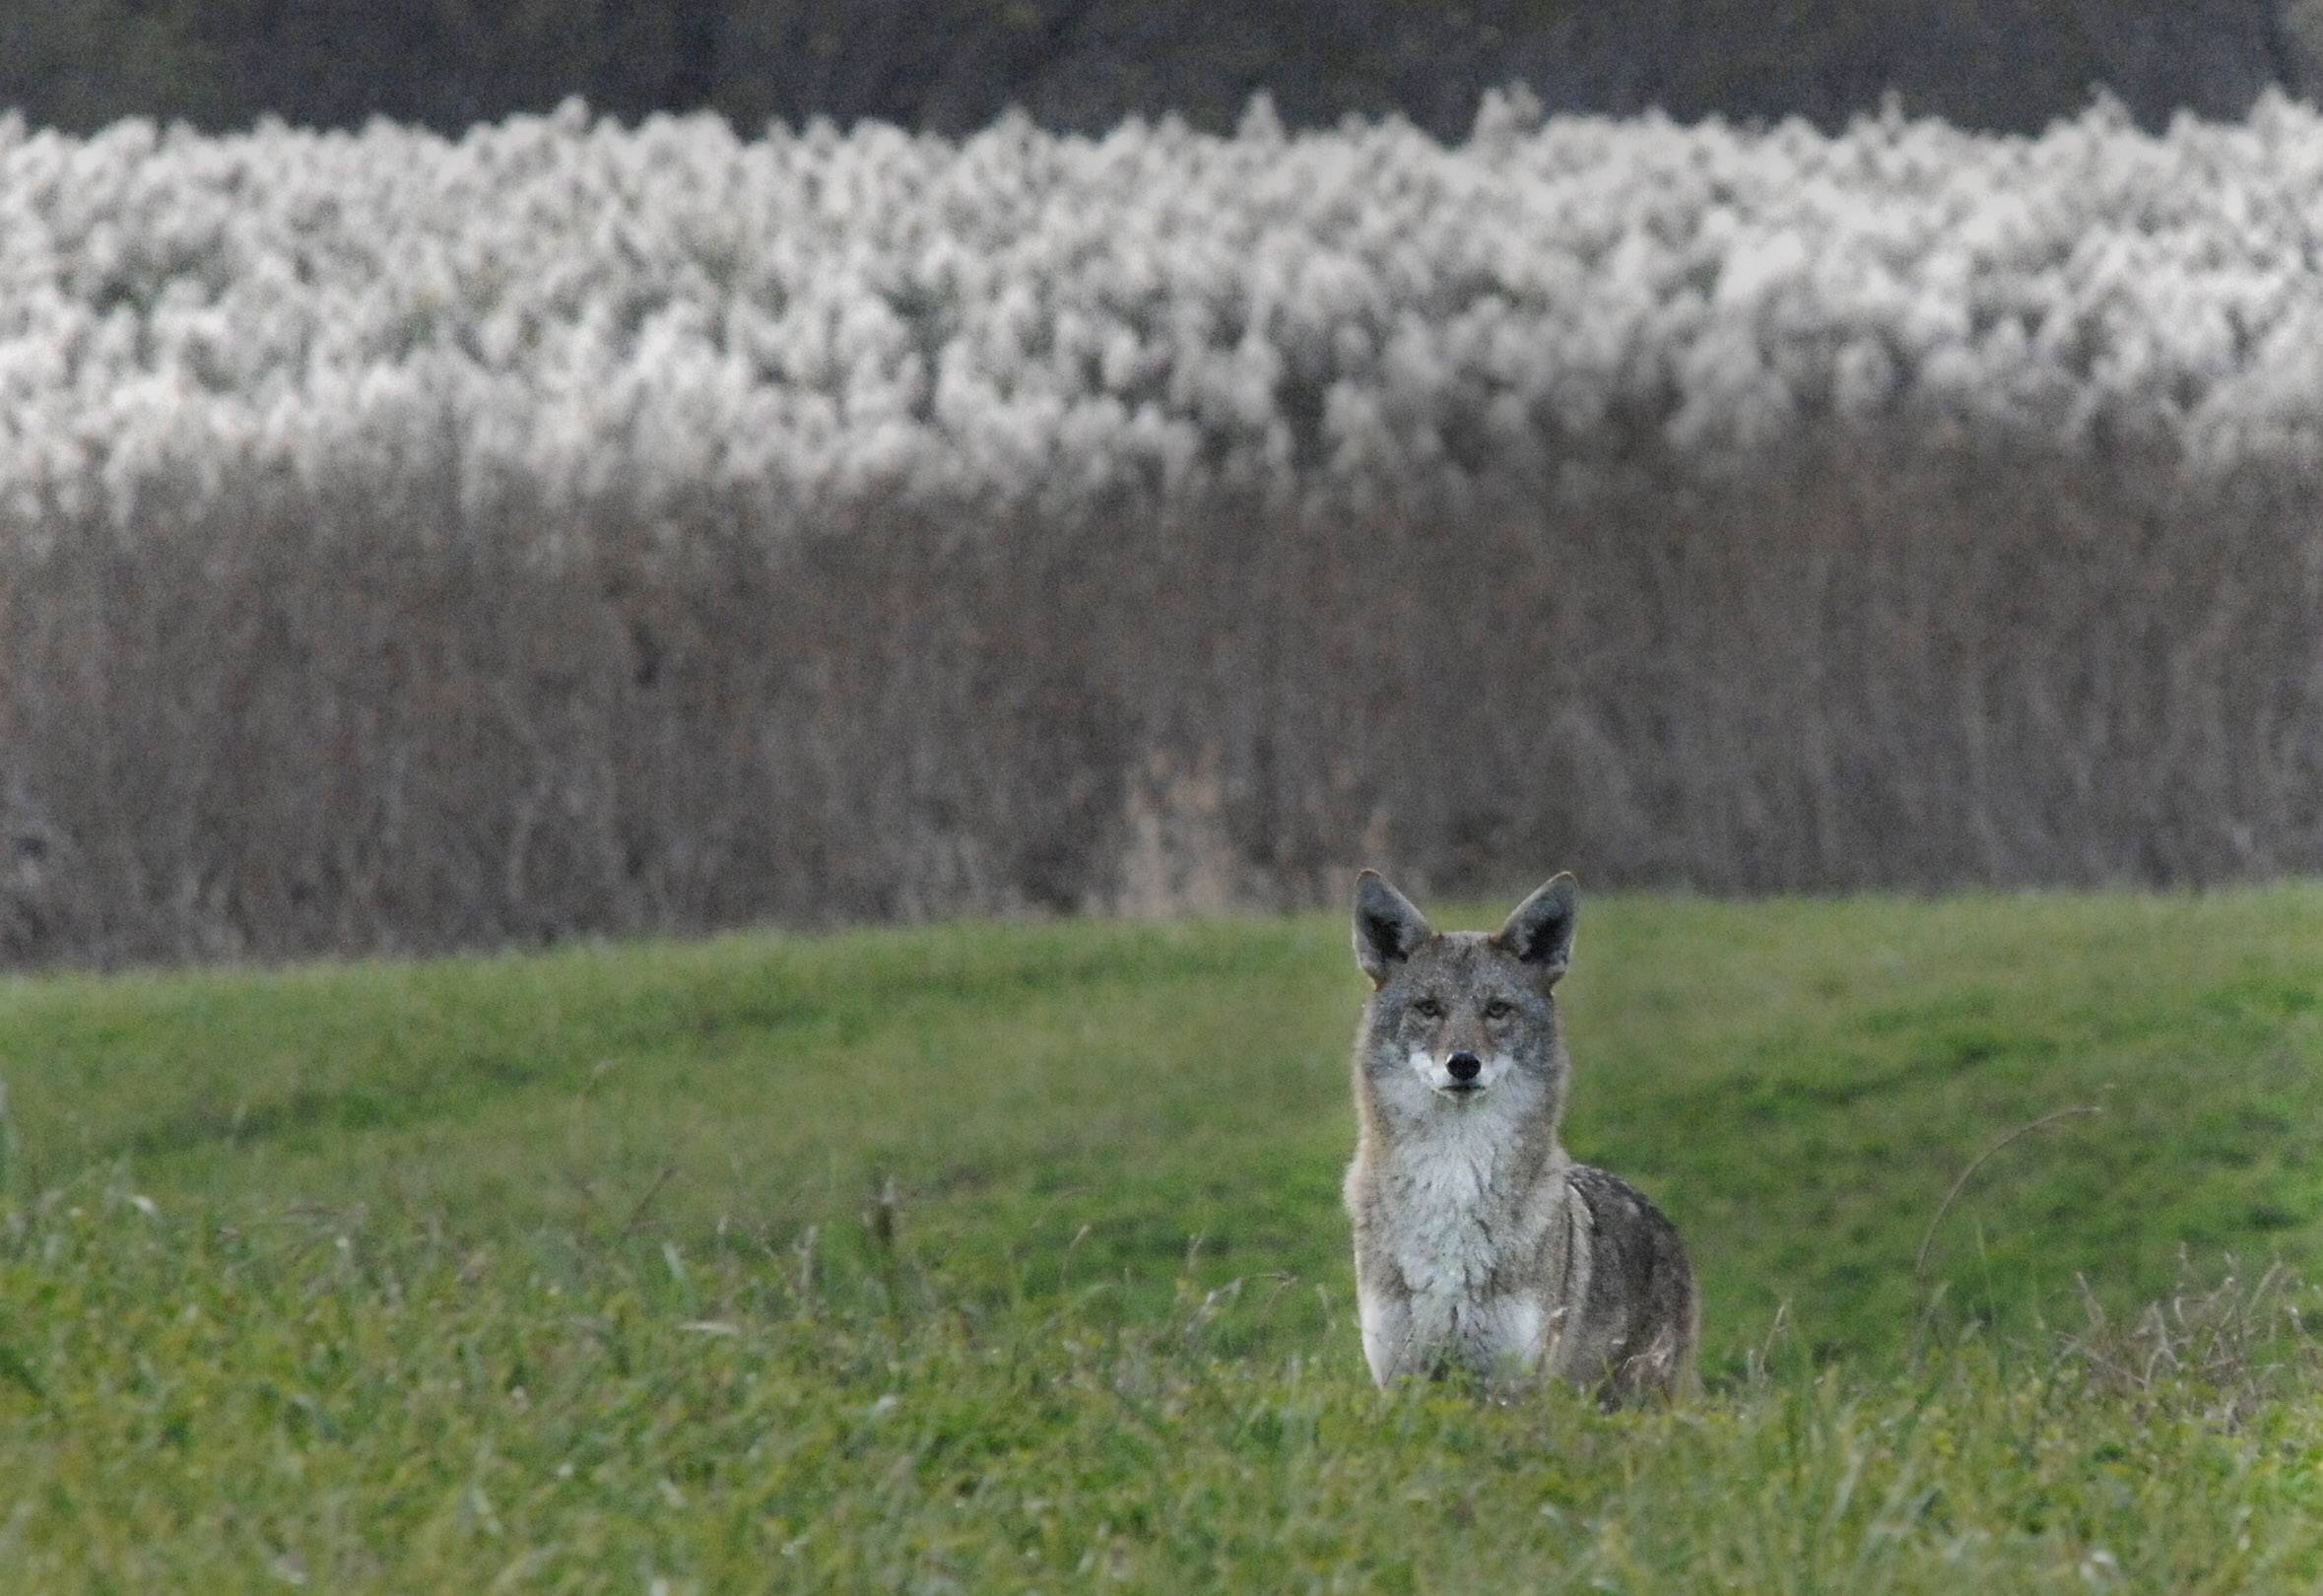 Geneva residents say coyotes are getting aggressive